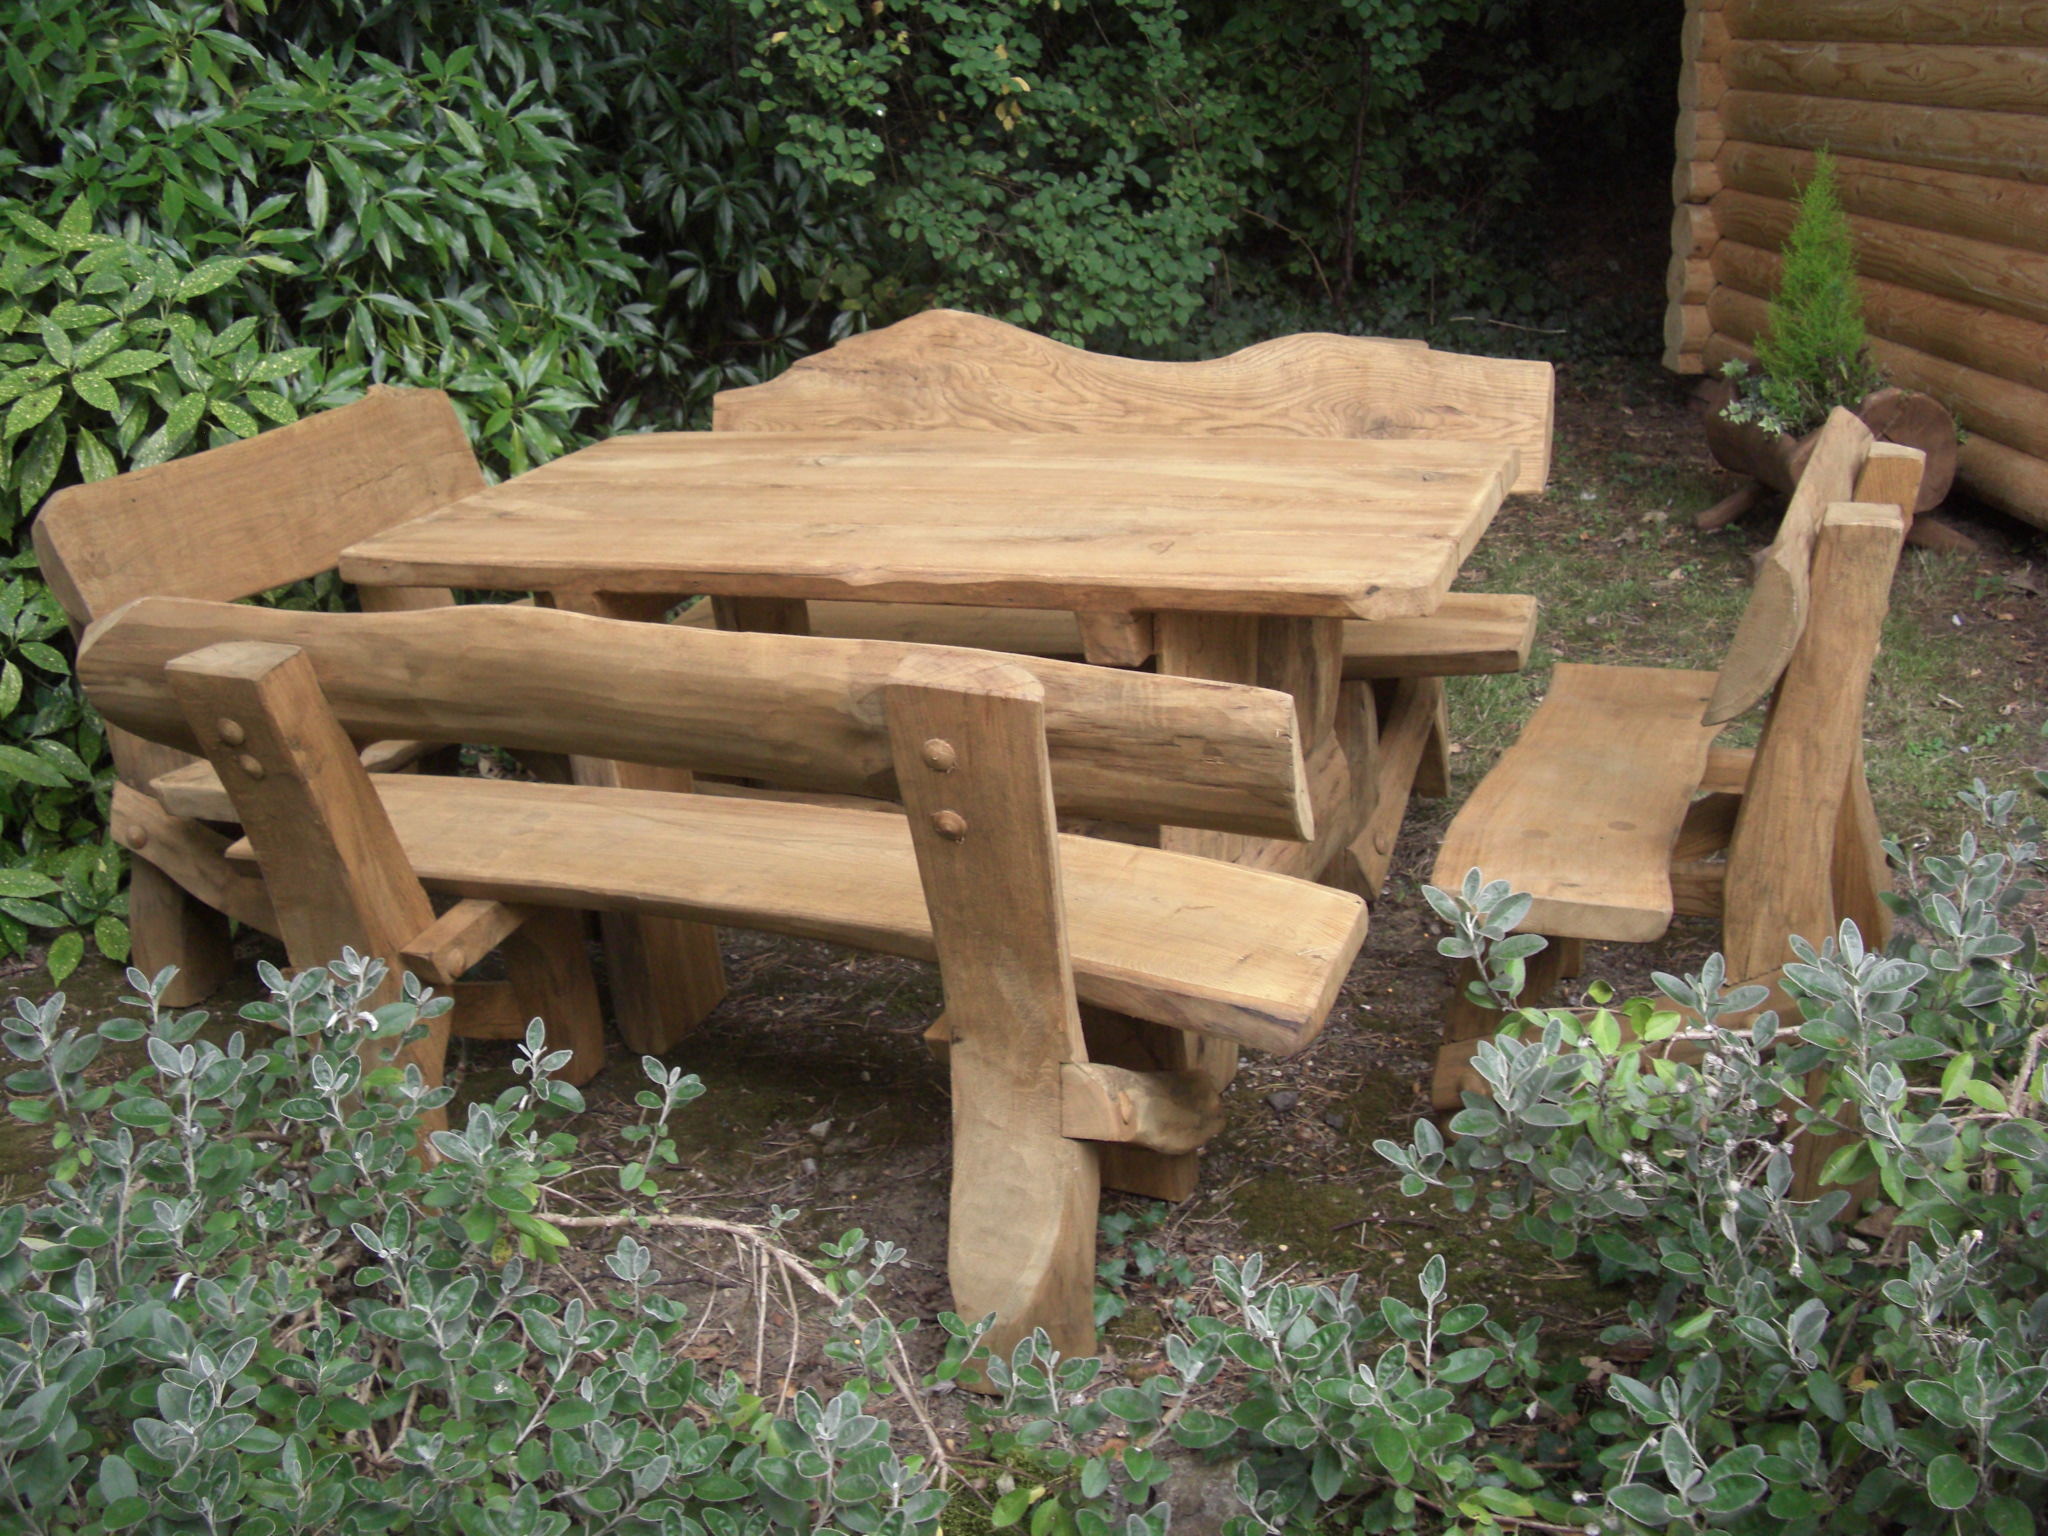 Bench and table set 2 the rustic company for Bancas de madera para jardin